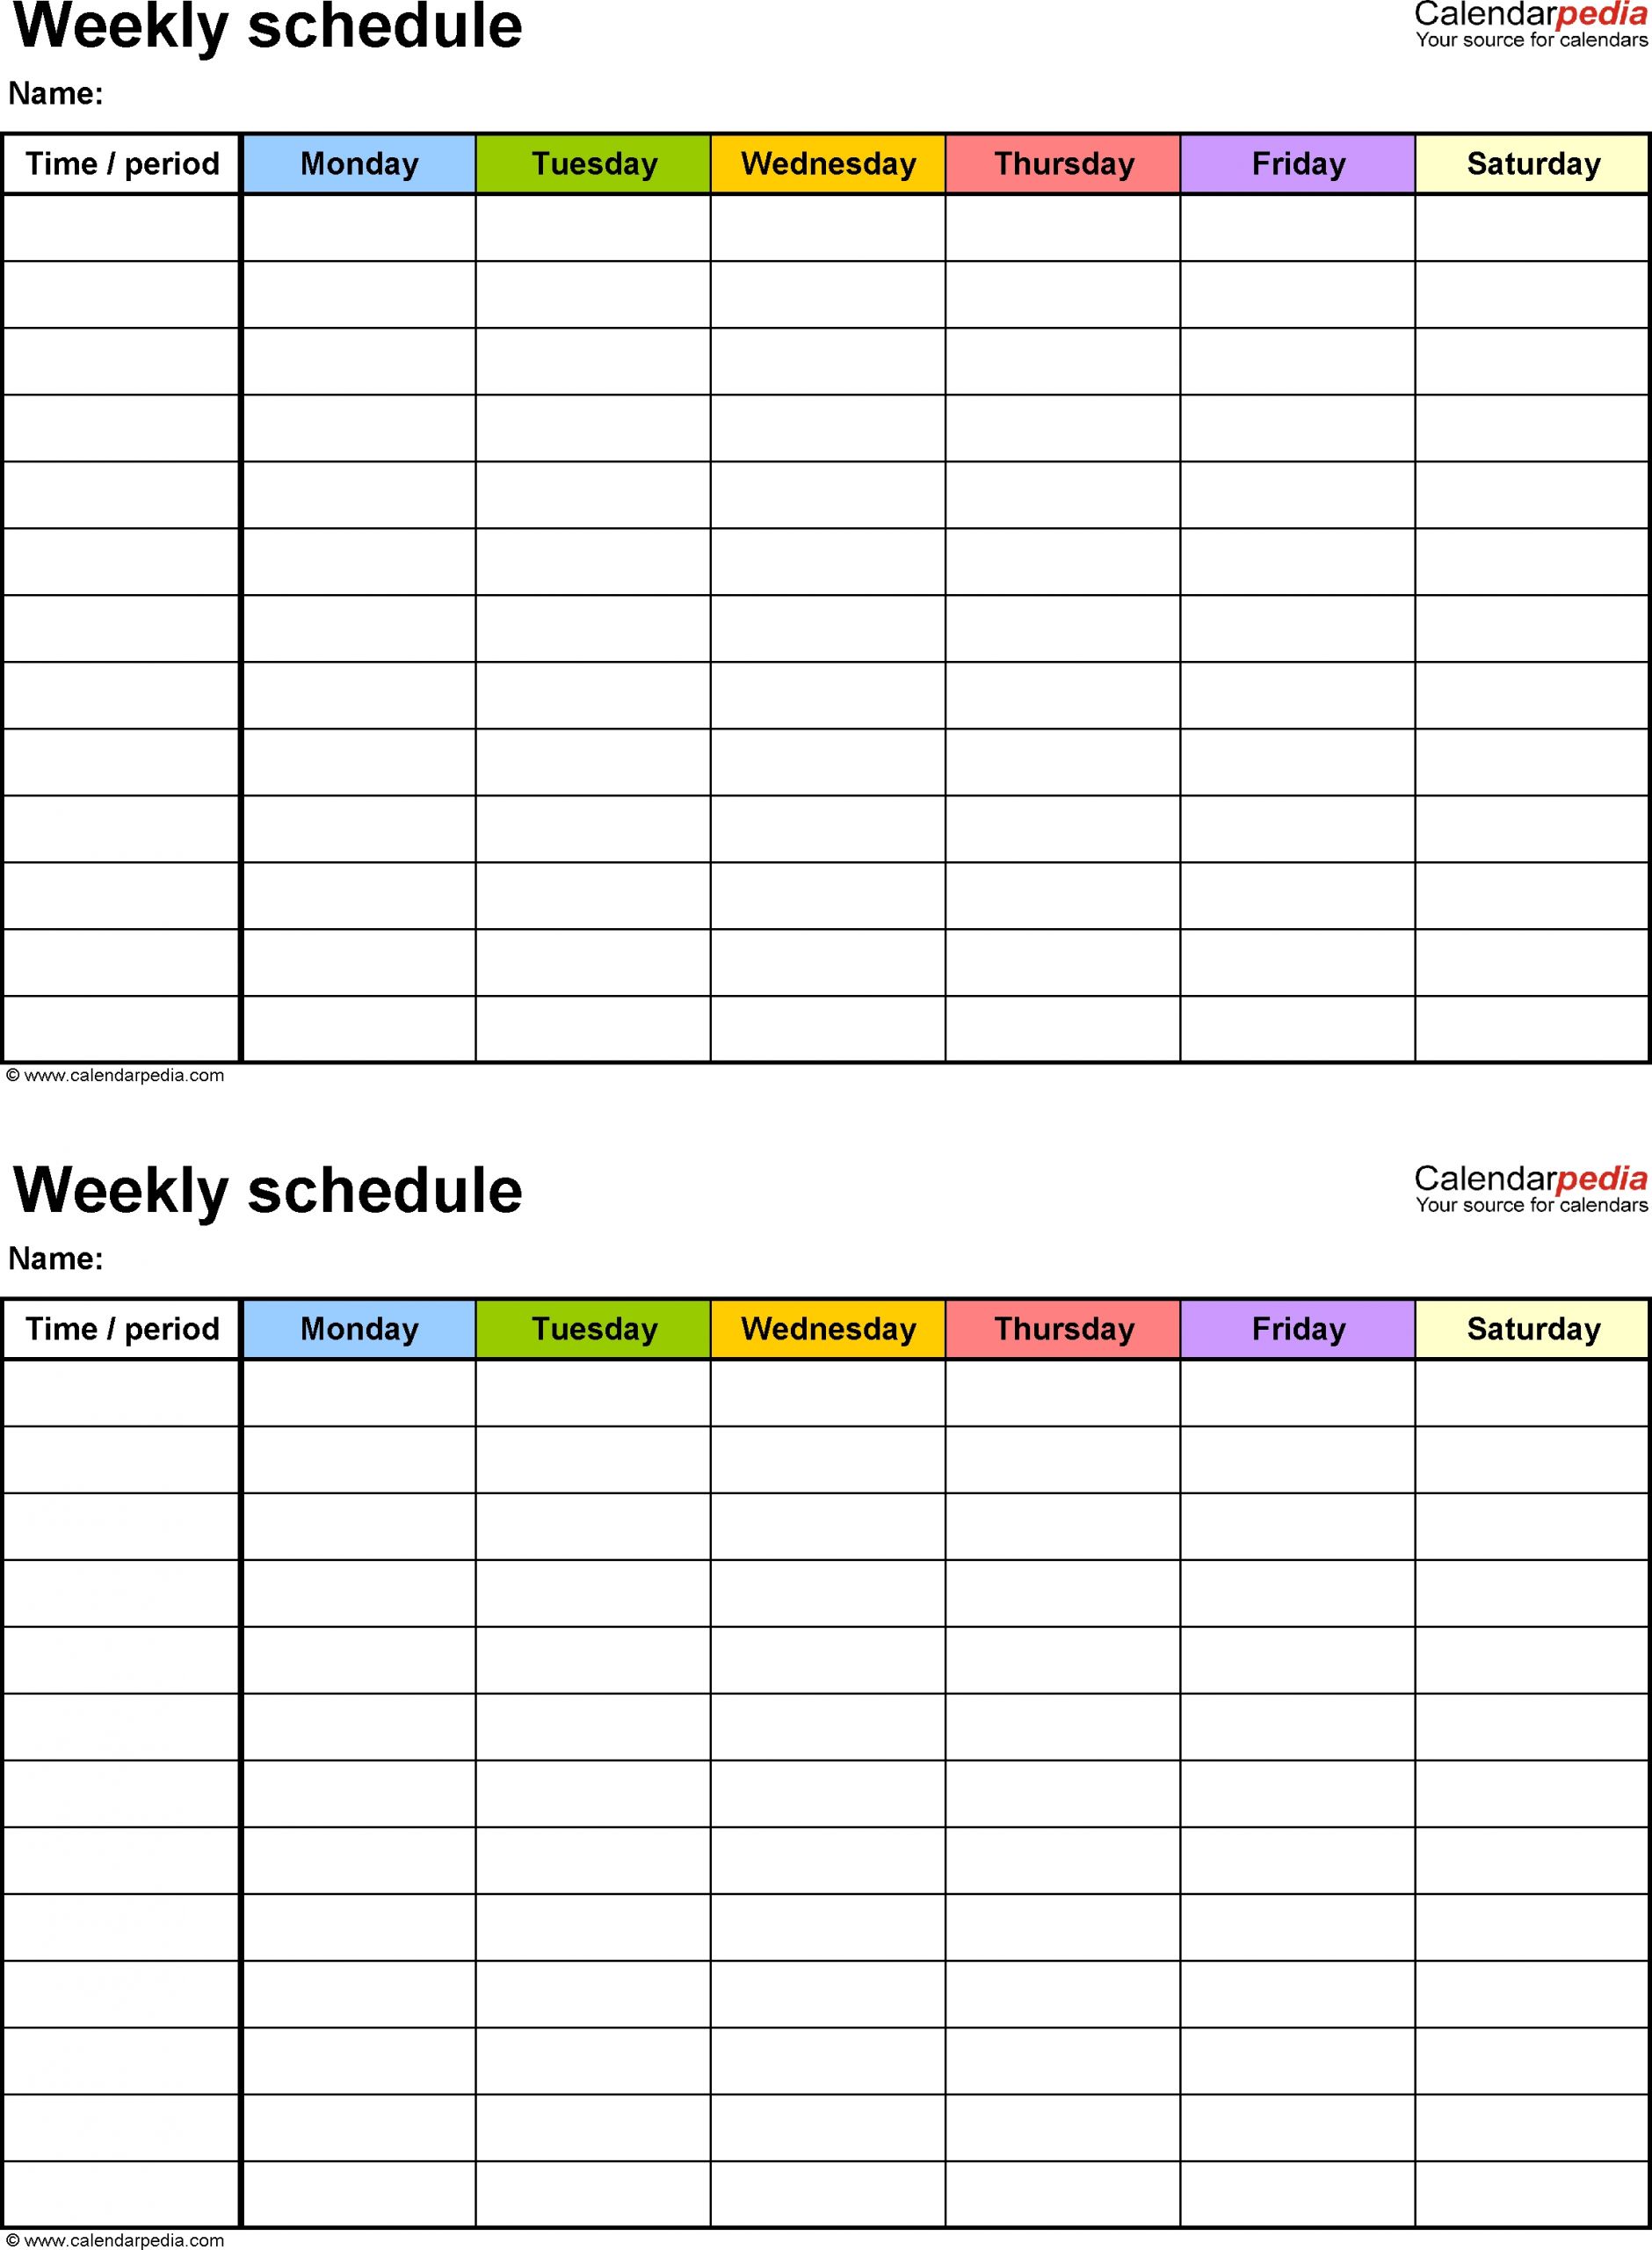 Monday To Friday Schedule Template - Calendar Inspiration Calendar Template Monday To Friday